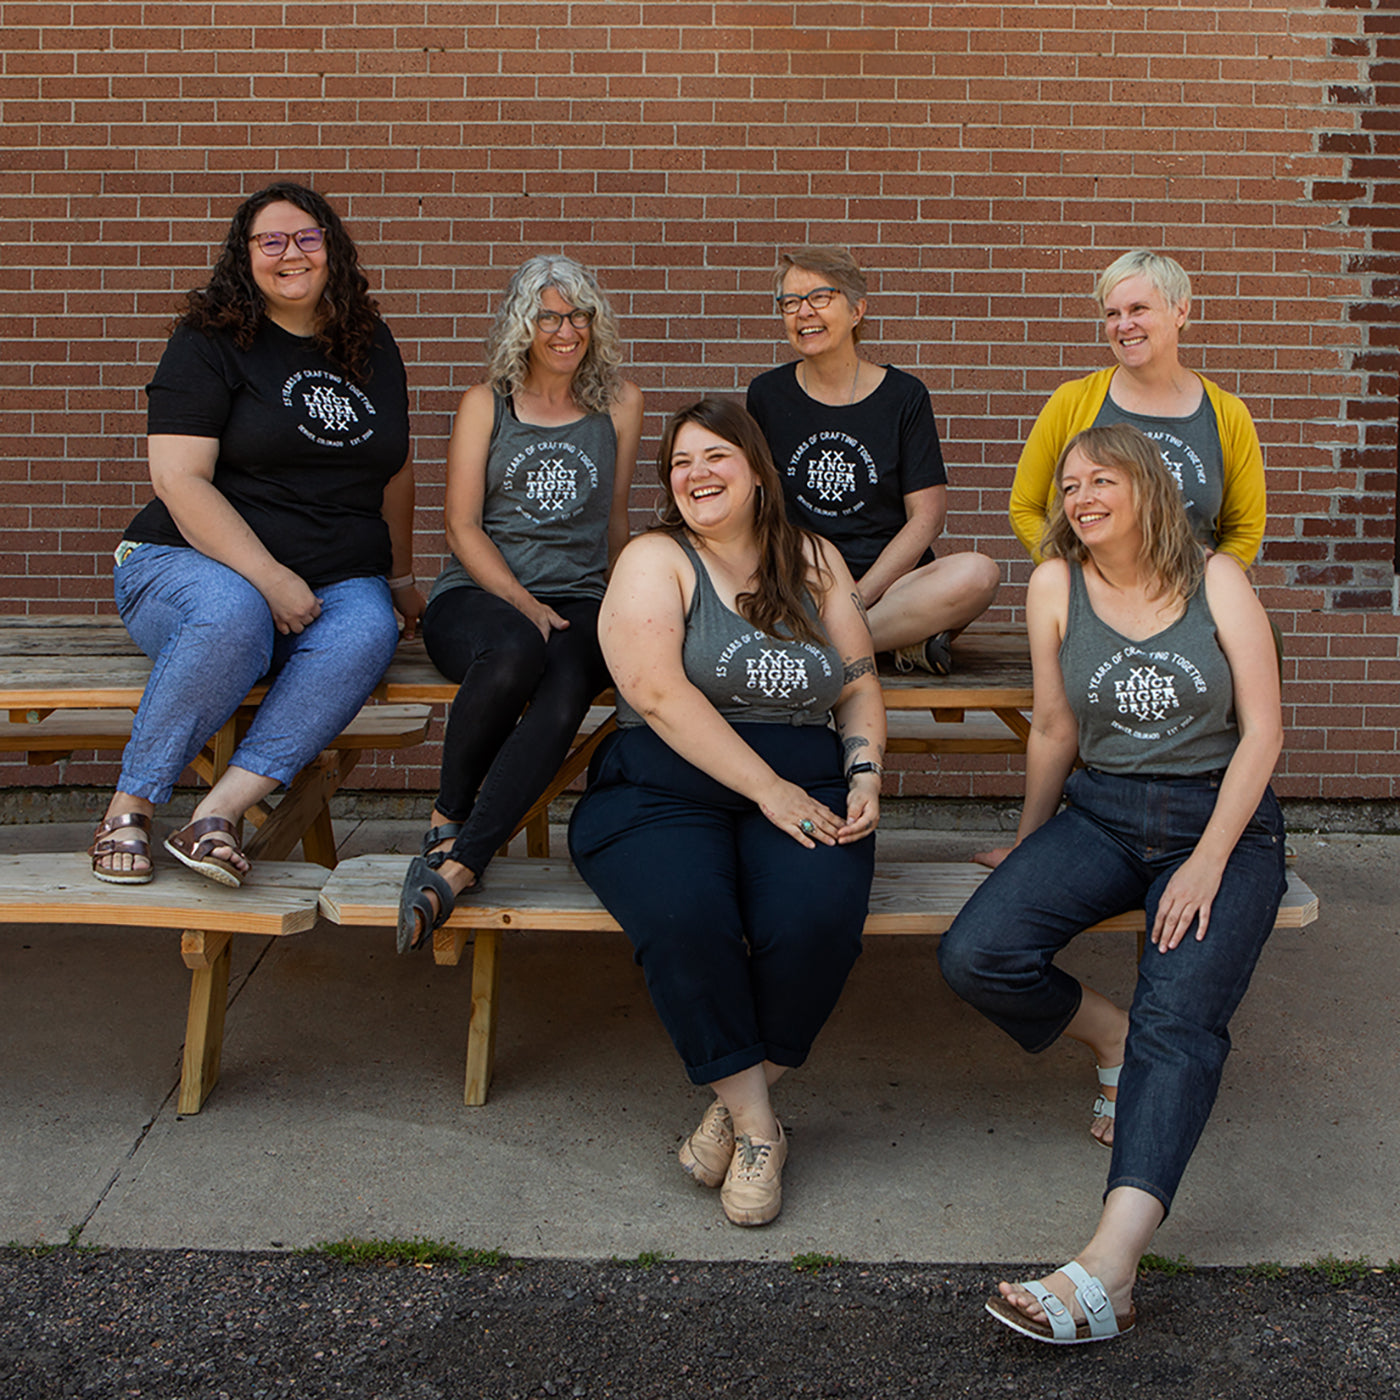 This is an image of women wearing Fancy Tiger Crafts shirts sitting on benches in front of a brick wall.